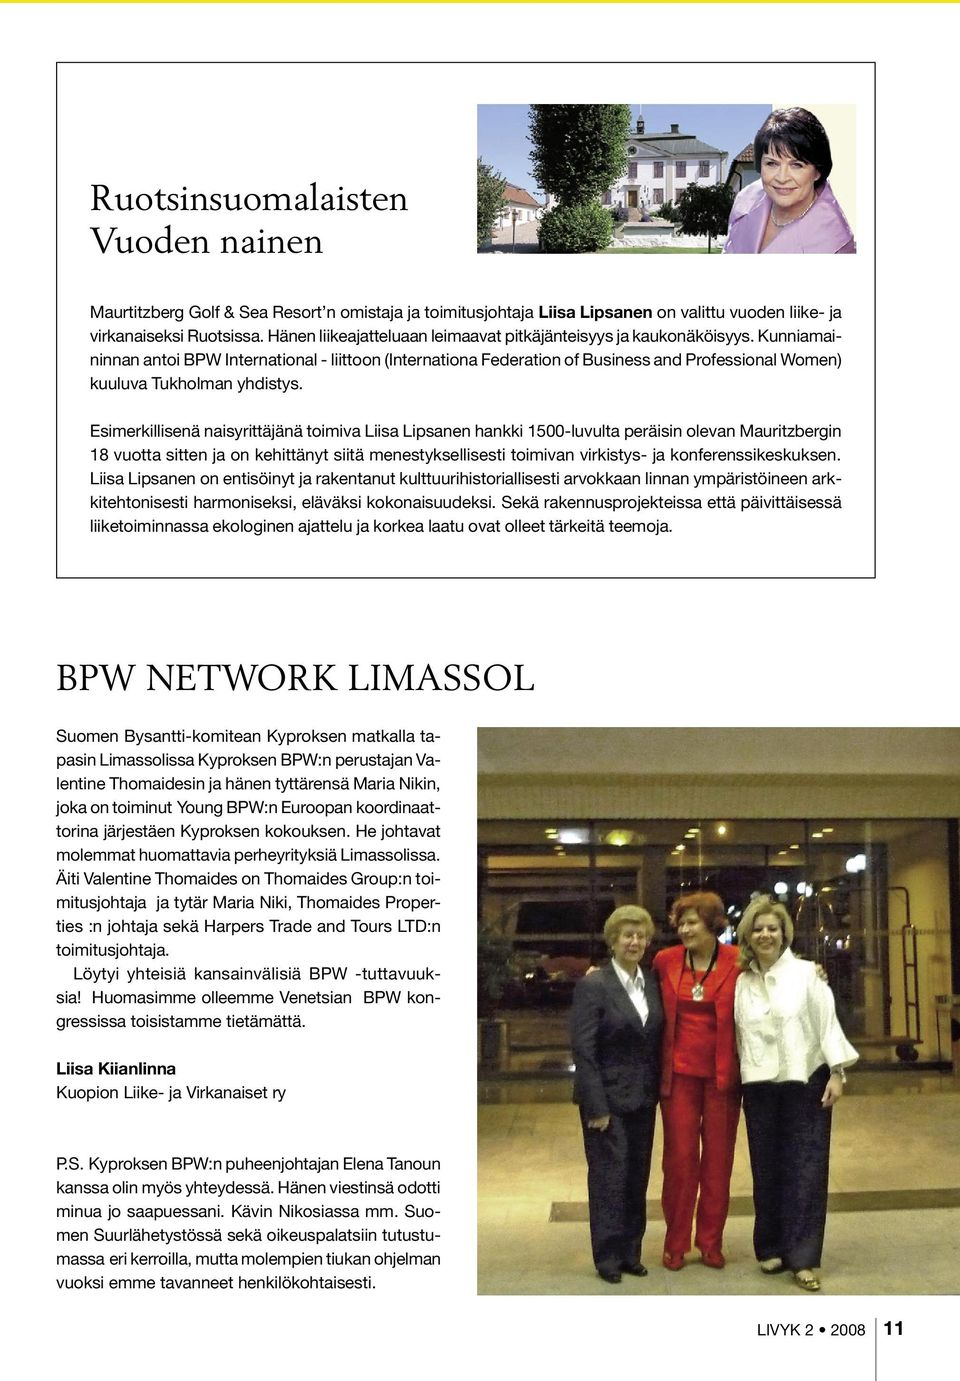 Kunniamaininnan antoi BPW International - liittoon (Internationa Federation of Business and Professional Women) kuuluva Tukholman yhdistys.